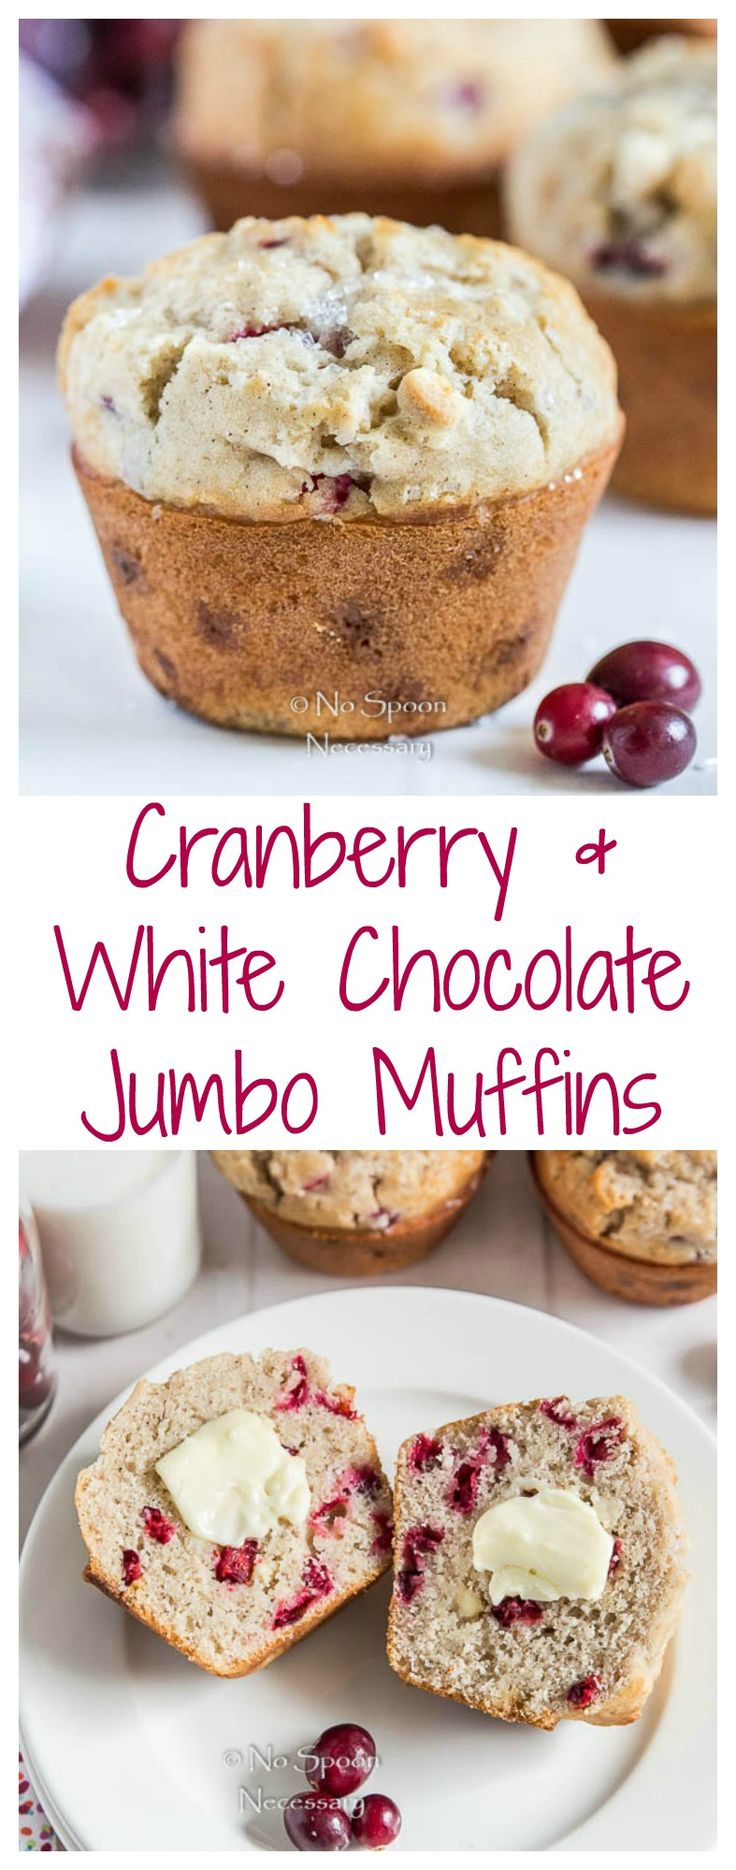 Bakery Style Jumbo Cranberry & White Chocolate Chip Muffins.